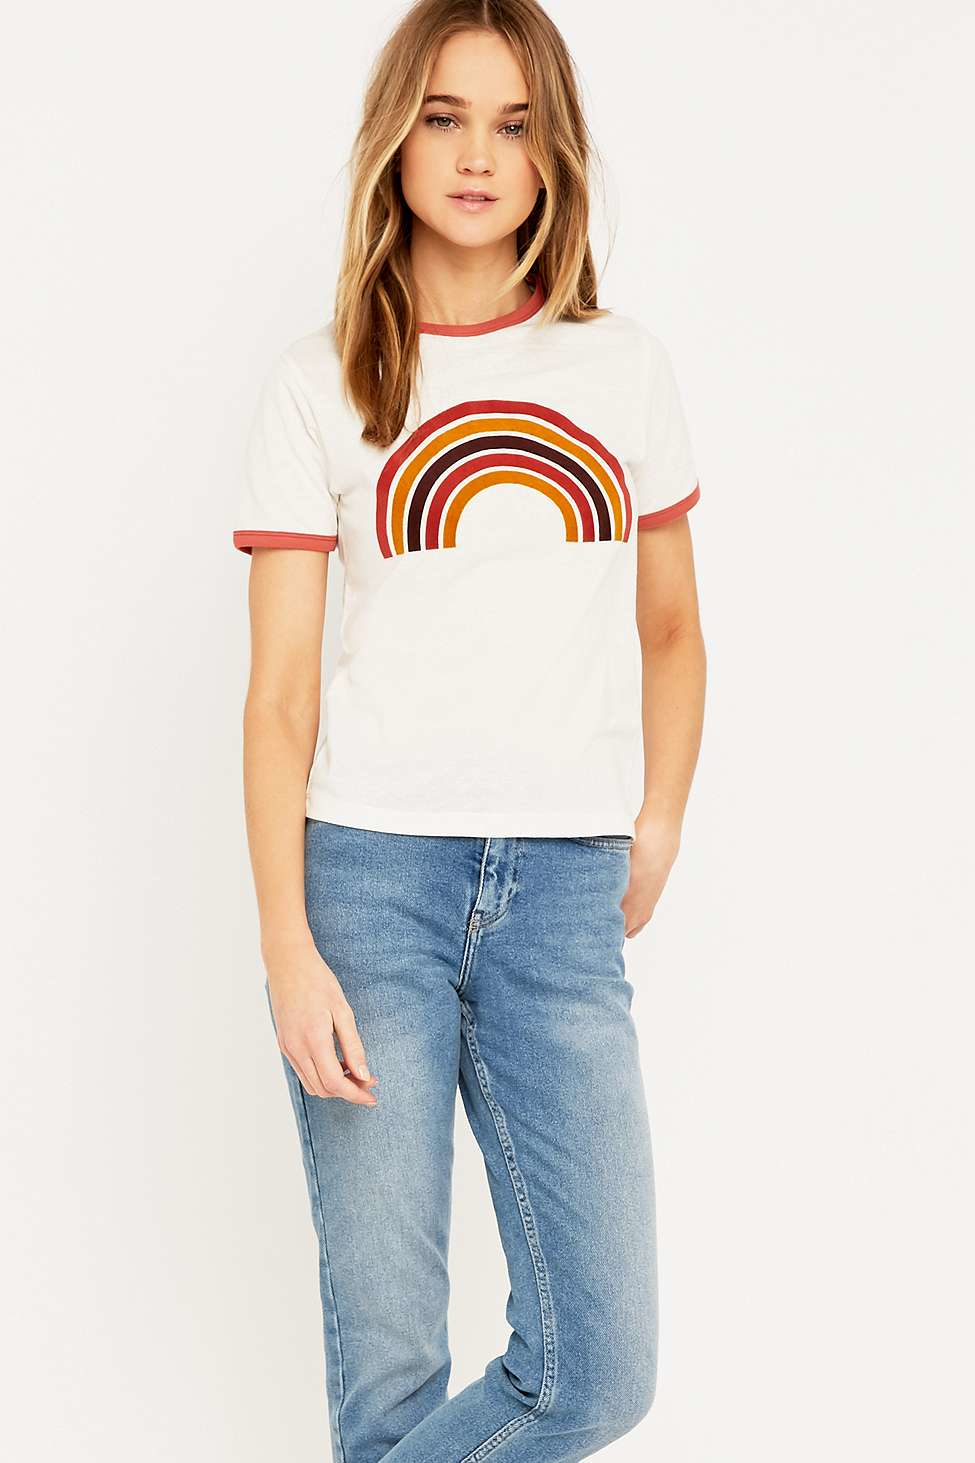 a9dc3bcc Urban Outfitters Retro Rainbow Ringer T-shirt in White - Lyst